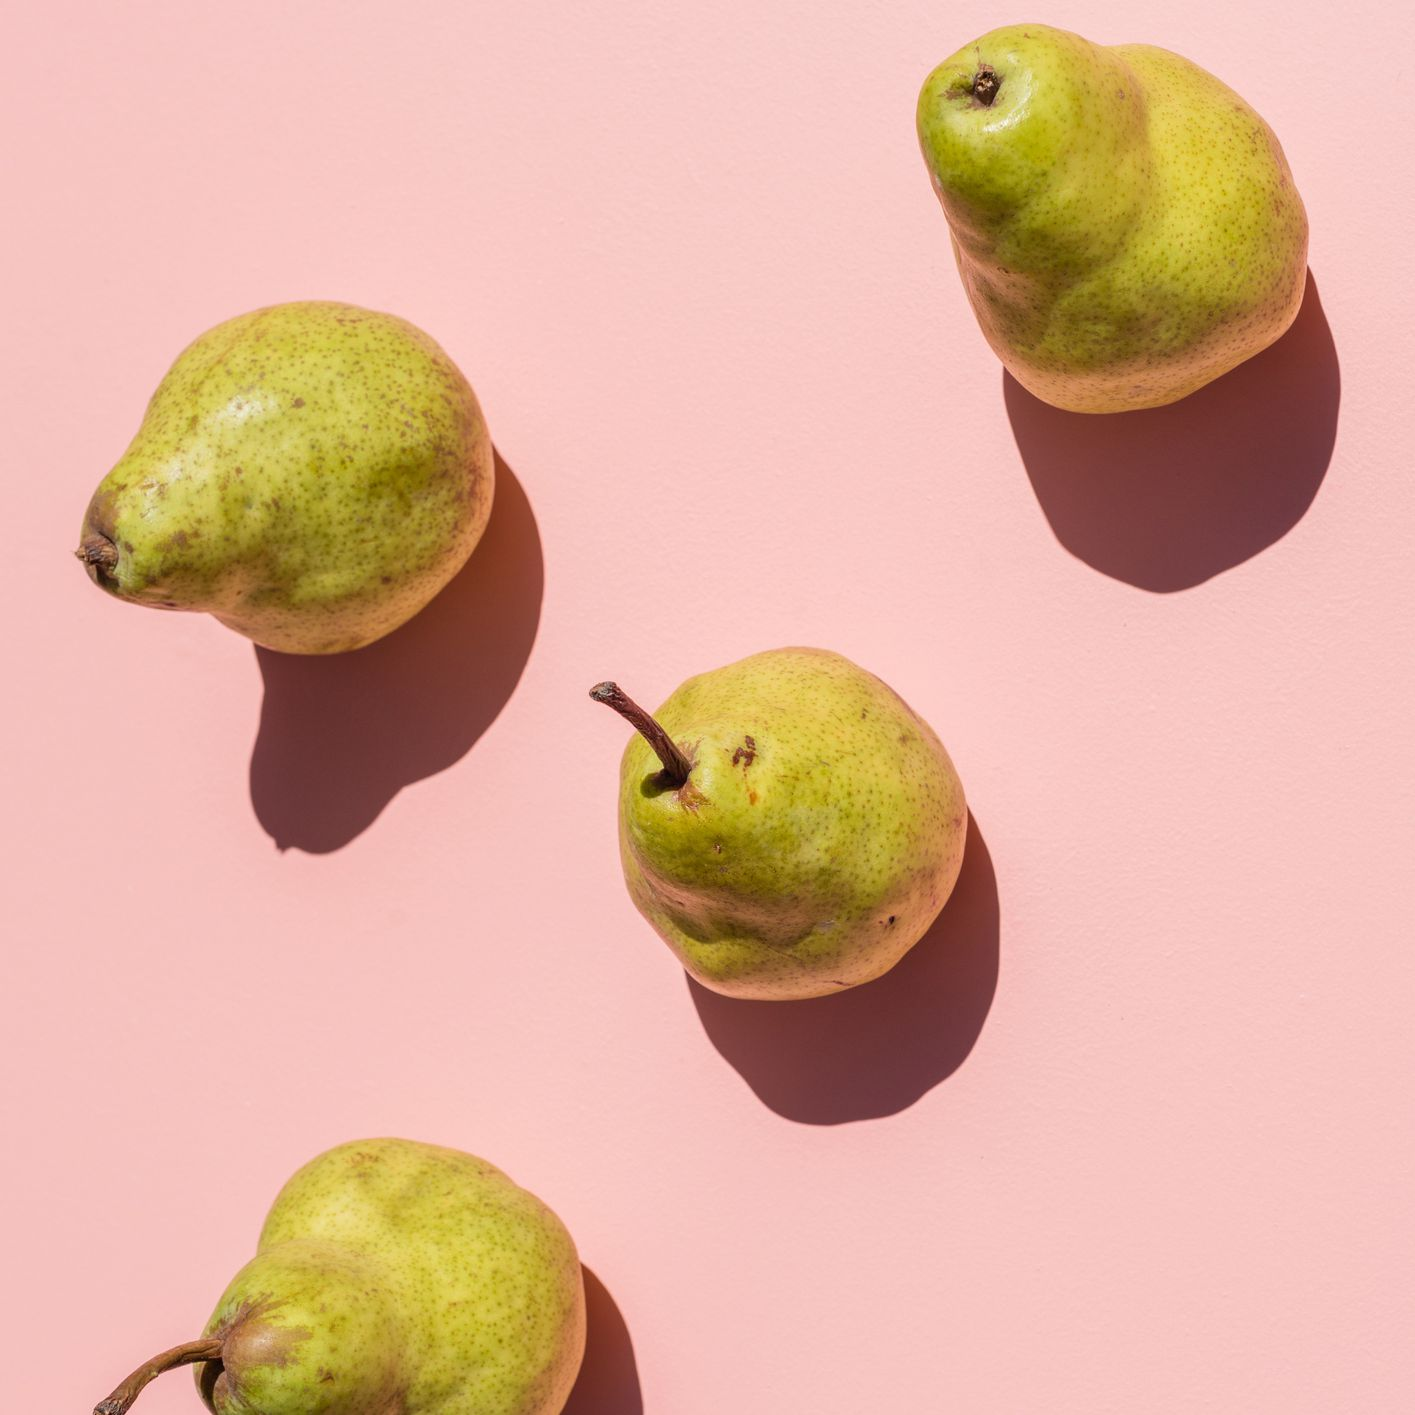 pears on pink